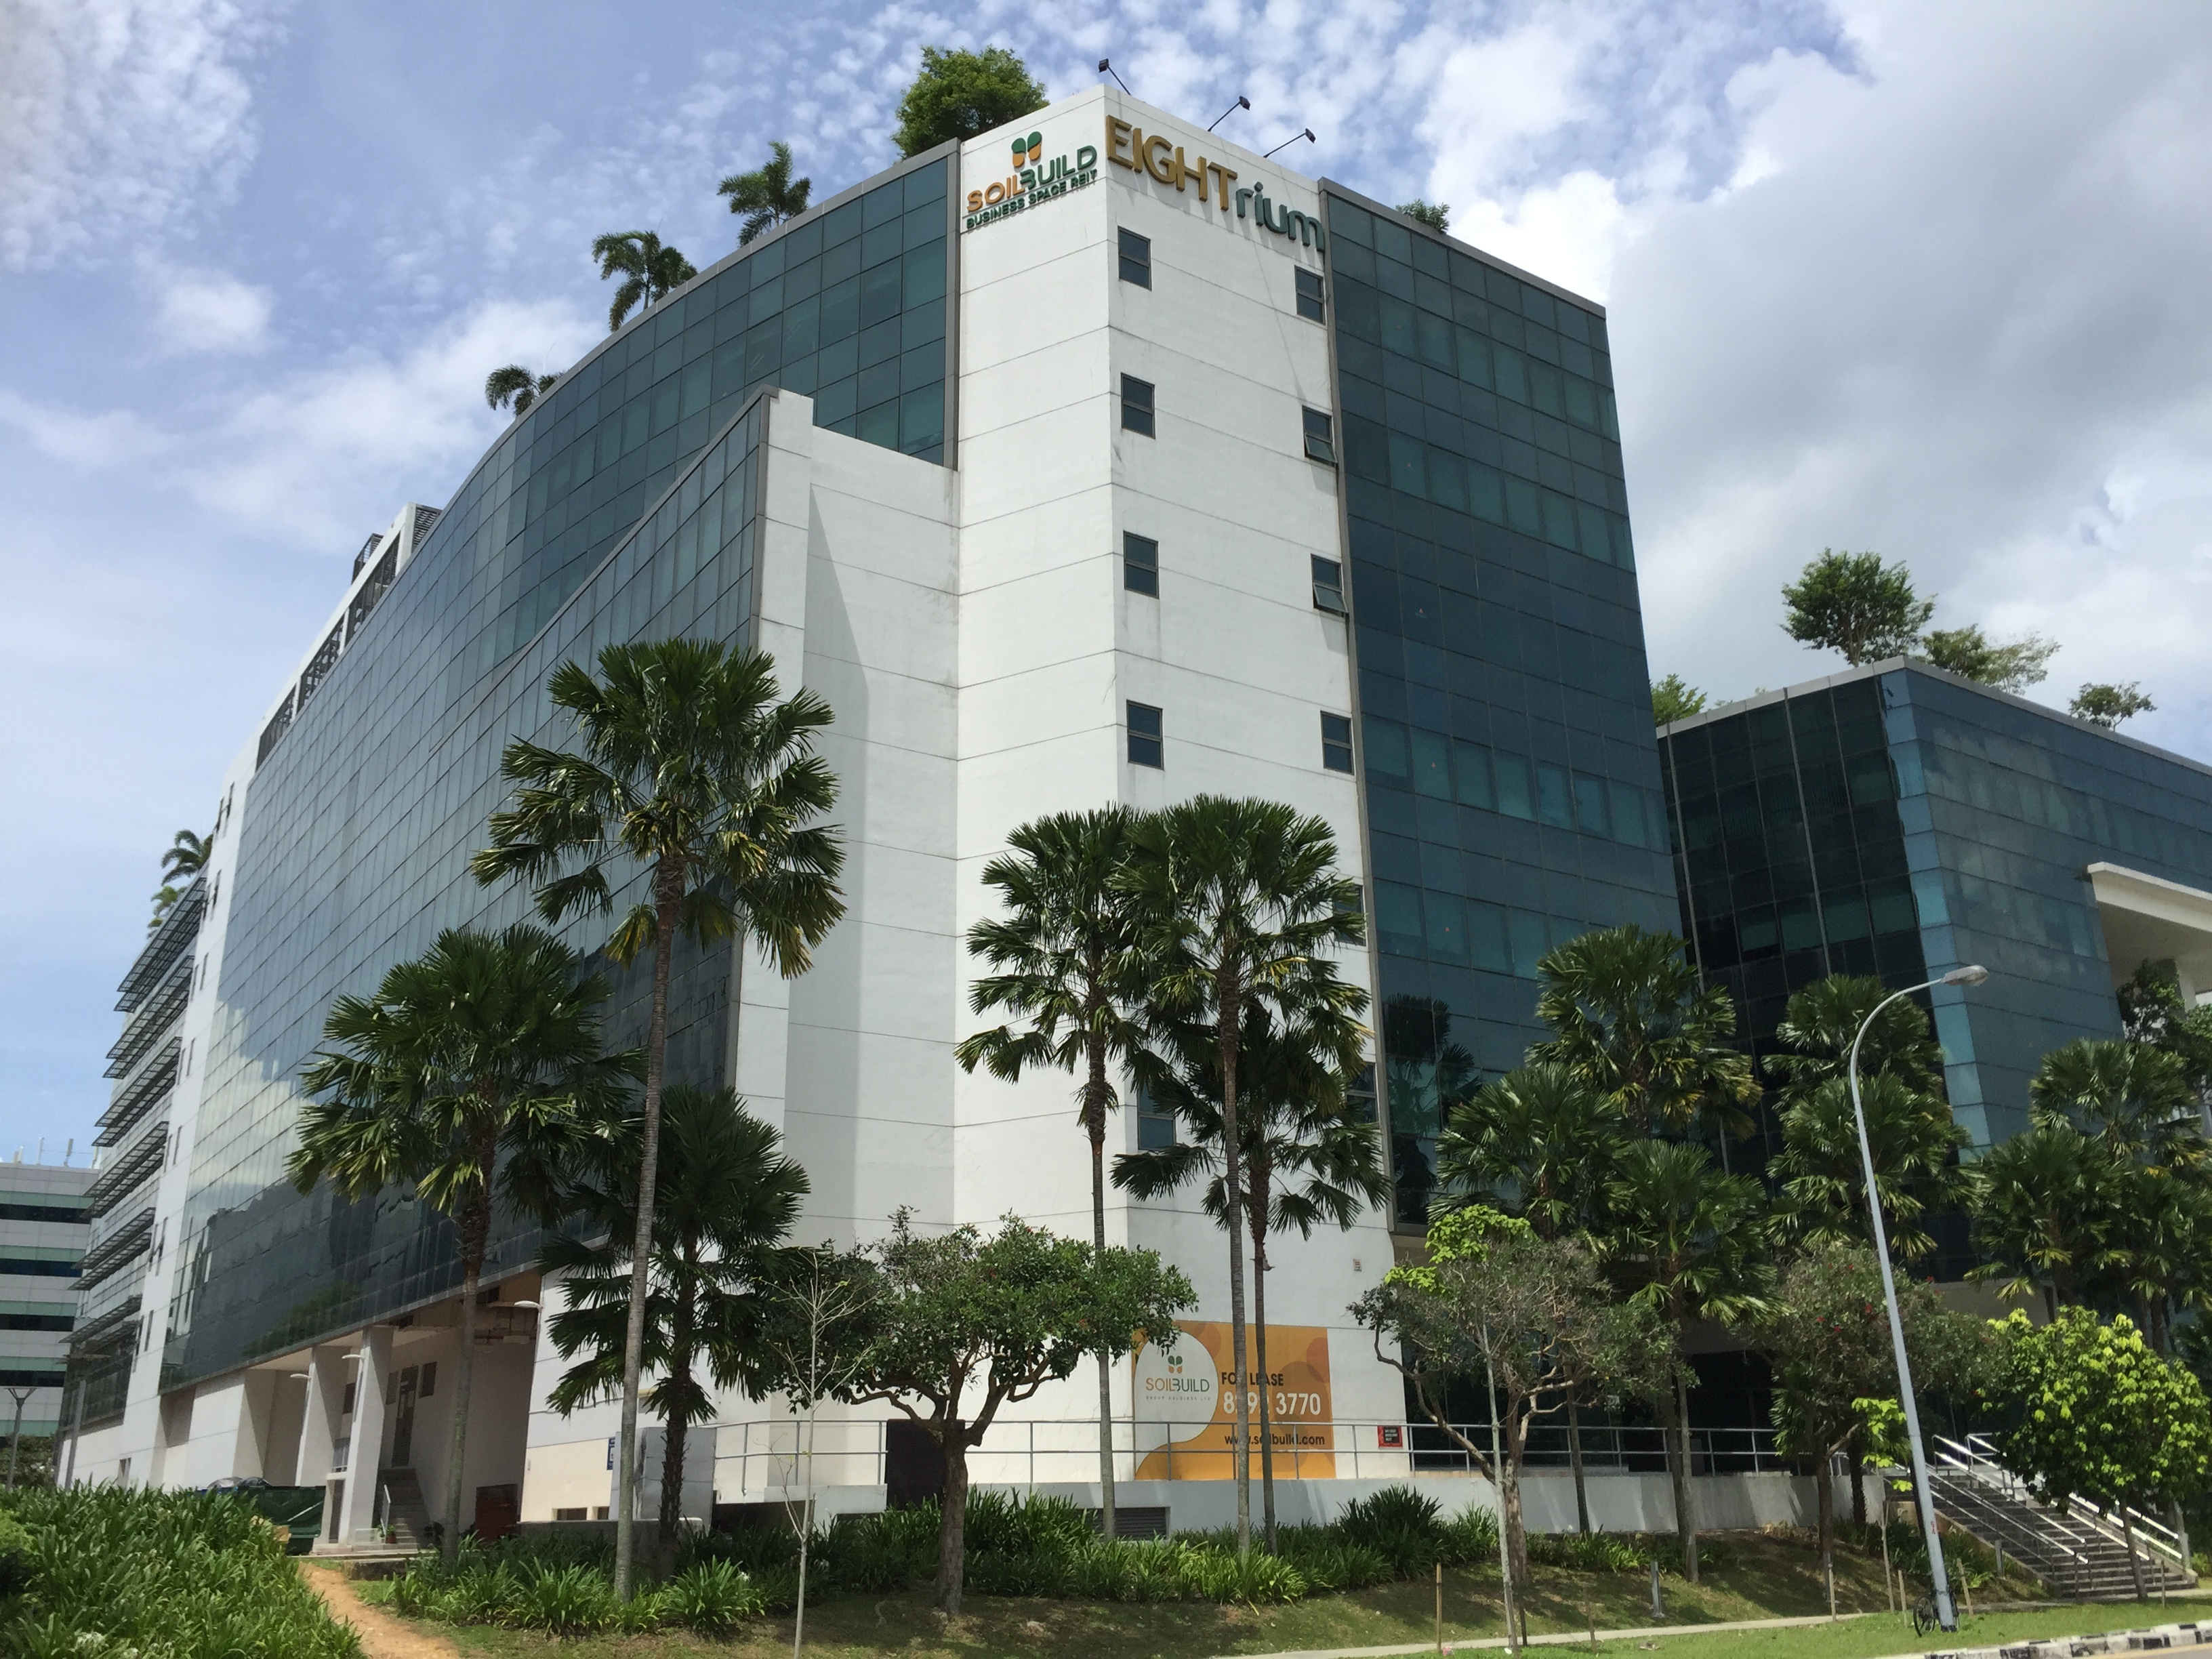 Soilbuild REIT's Eightrium in Changi Business Park (Photo: REITsWeek)